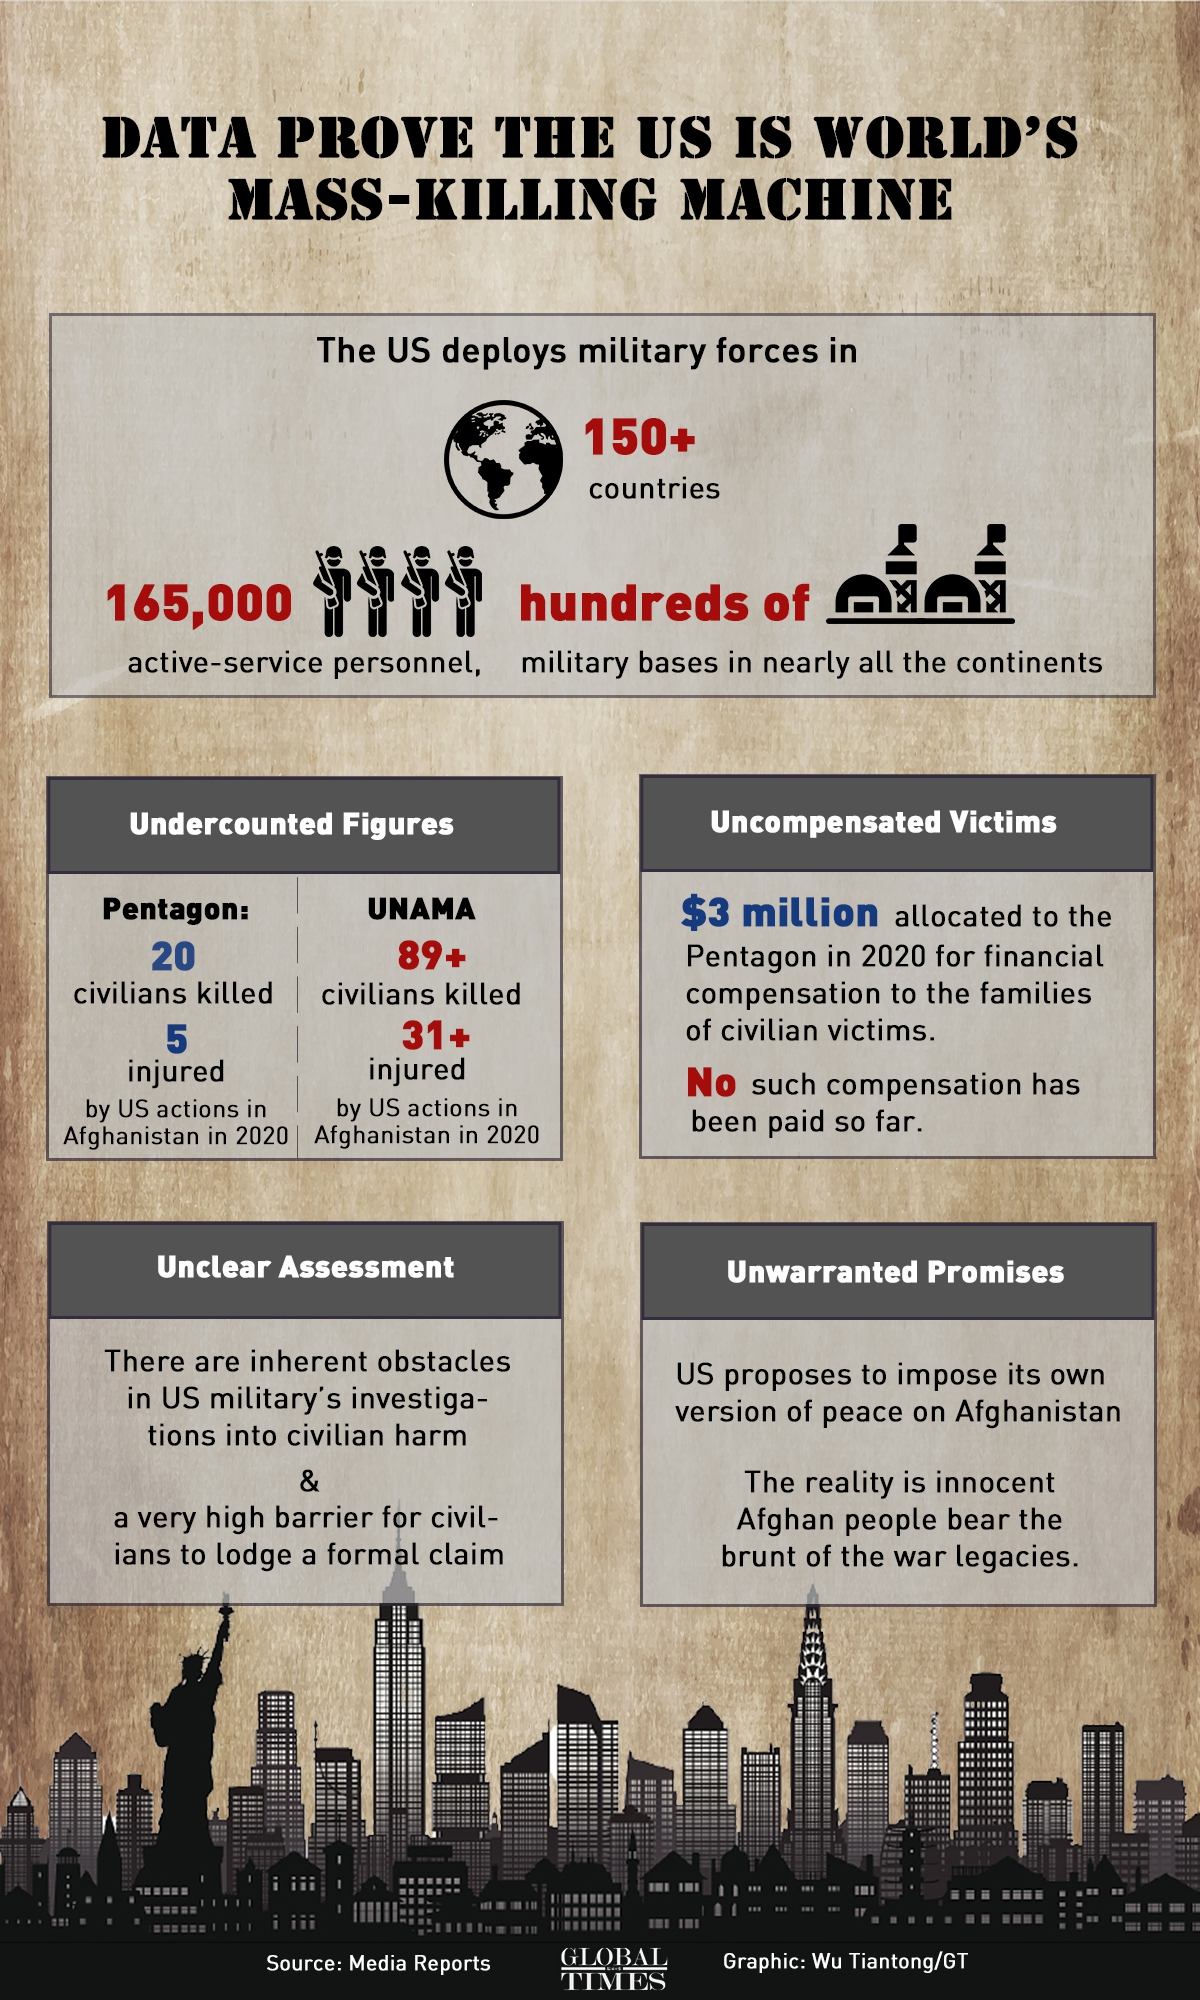 Data prove the US is world's mass-killing machine Infographic: Wu Tiantong/GT